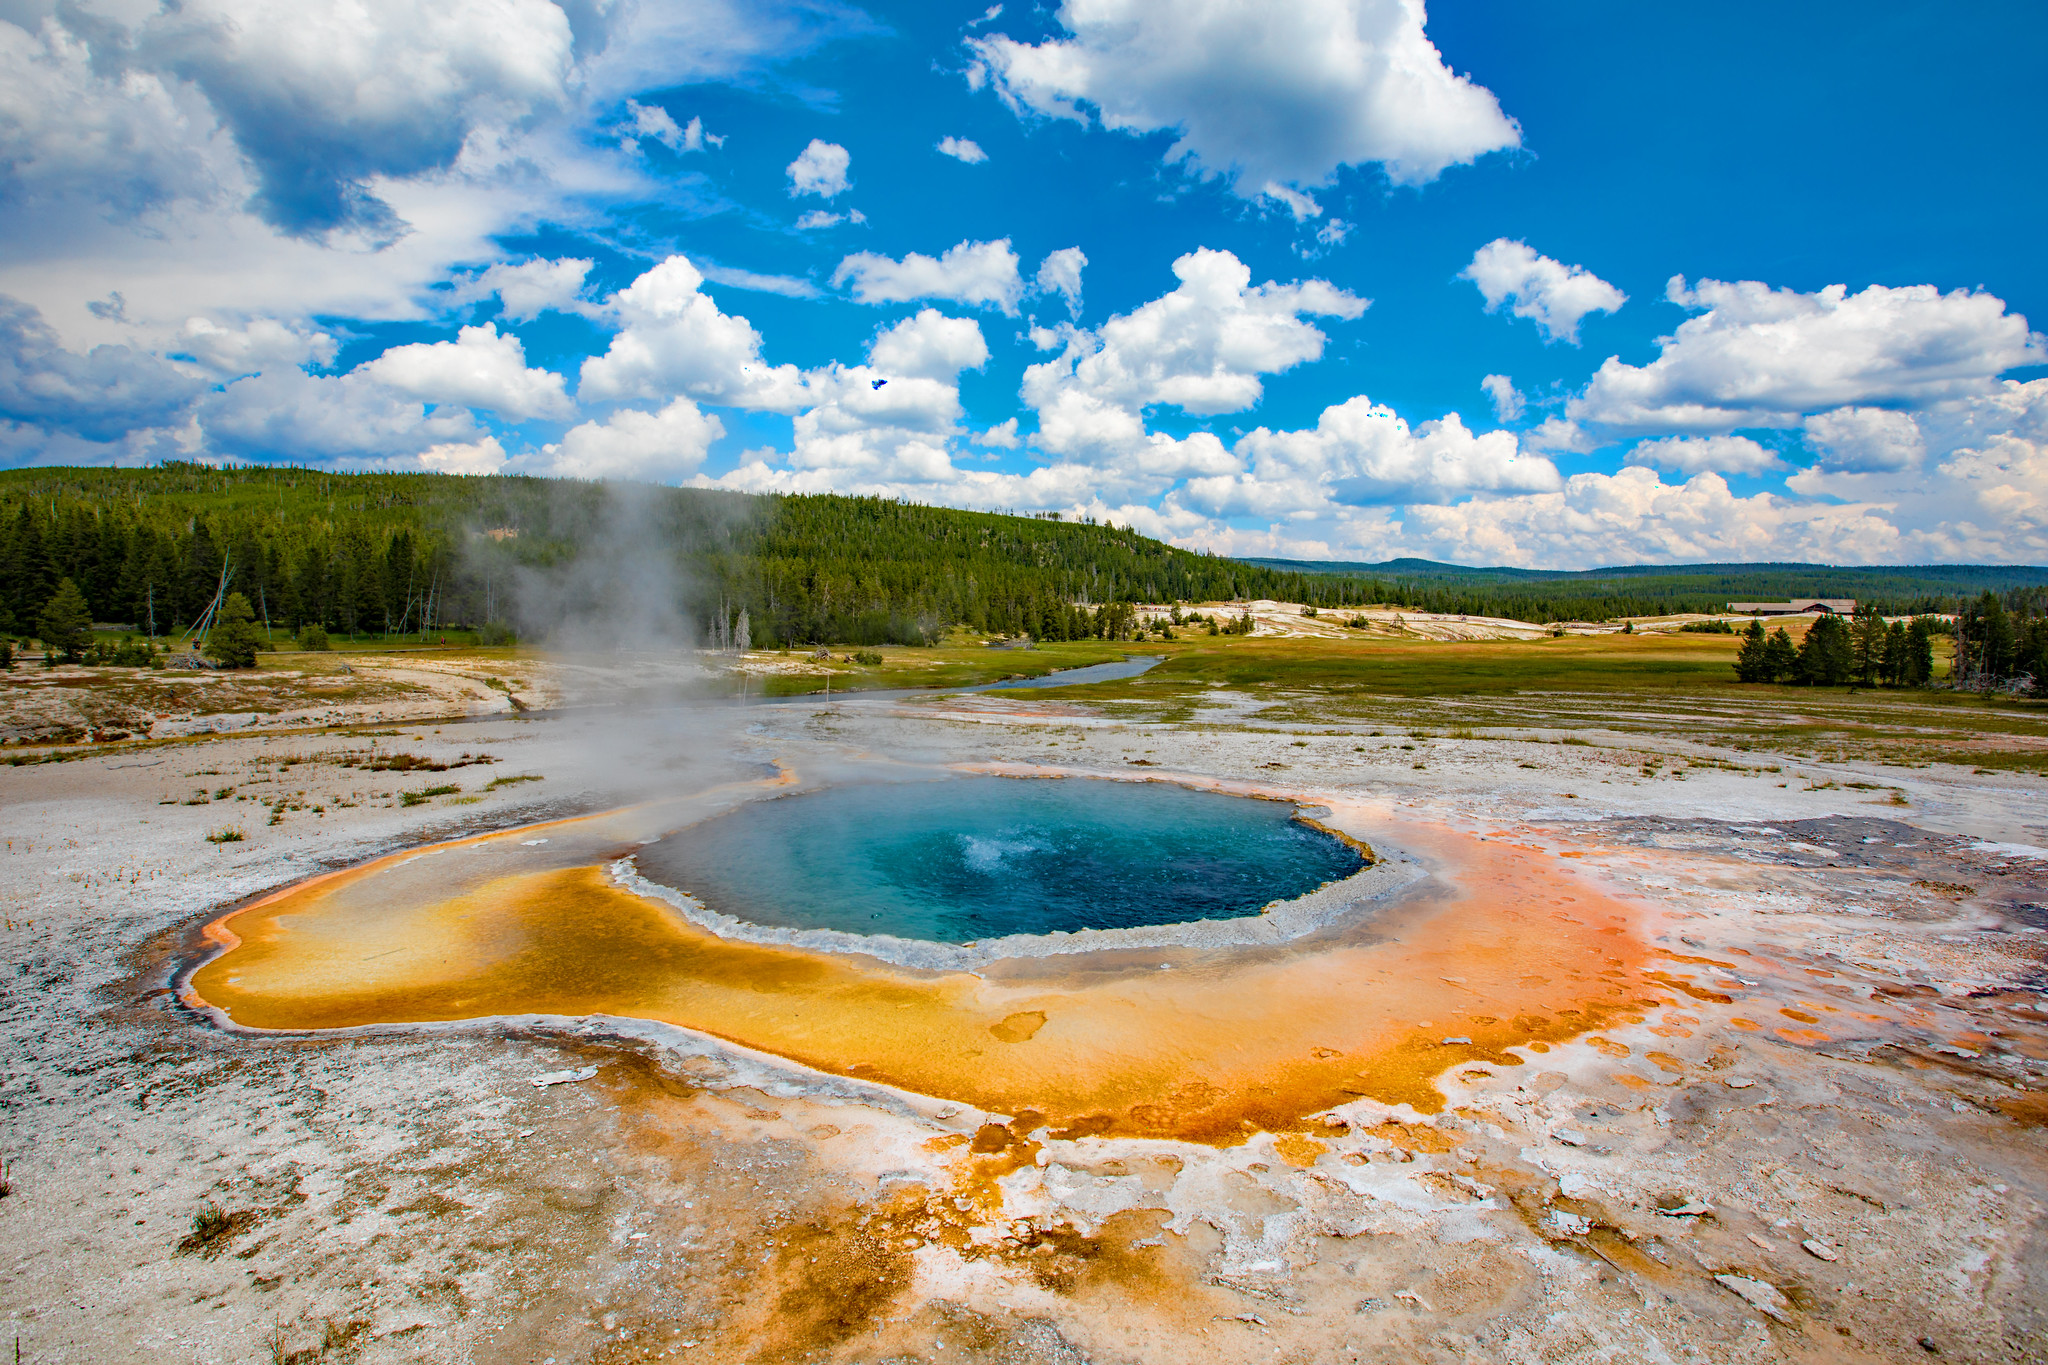 Yellowstone National Park - Amazing Attraction in Wyoming For a Memorable Vacation